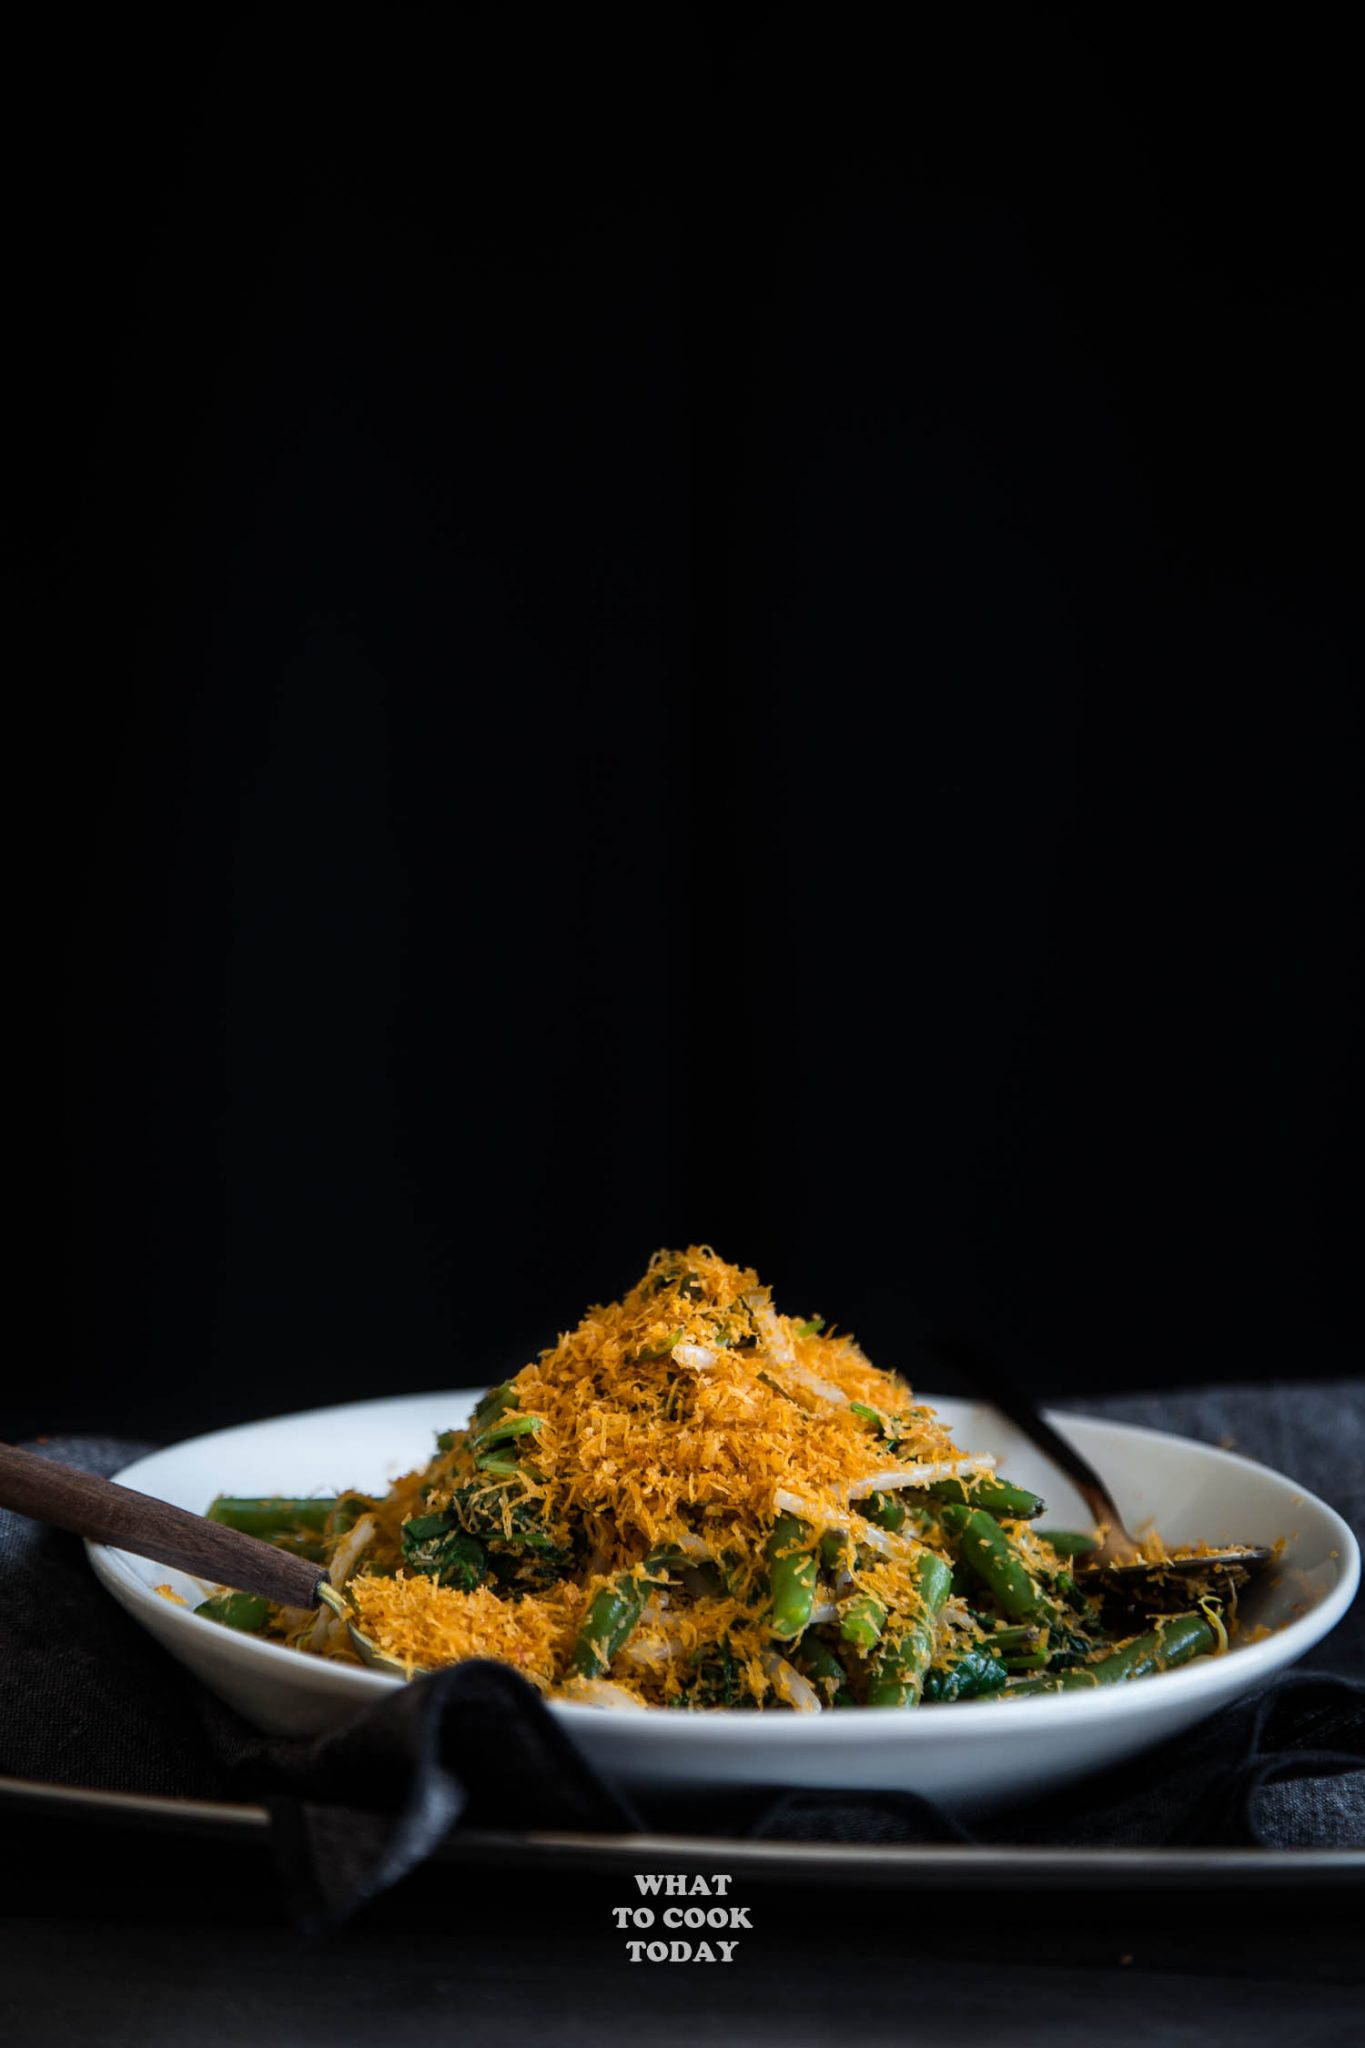 Urap Sayur (Salad with Spiced Grated Coconut Topping) #AsianSaladFeast #glutenfree #vegan